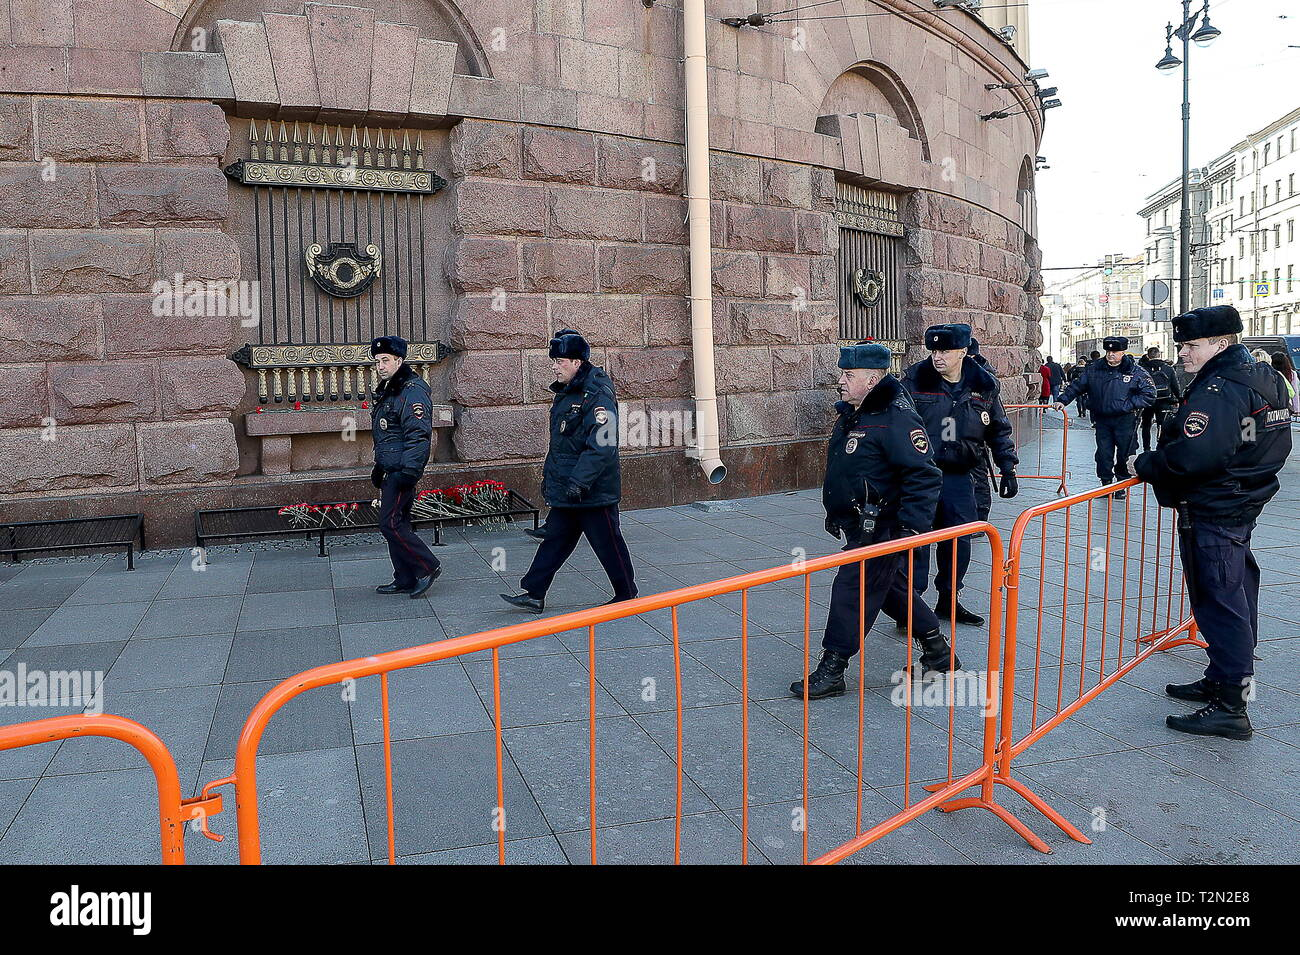 Crowd Control Barriers Stock Photos & Crowd Control Barriers